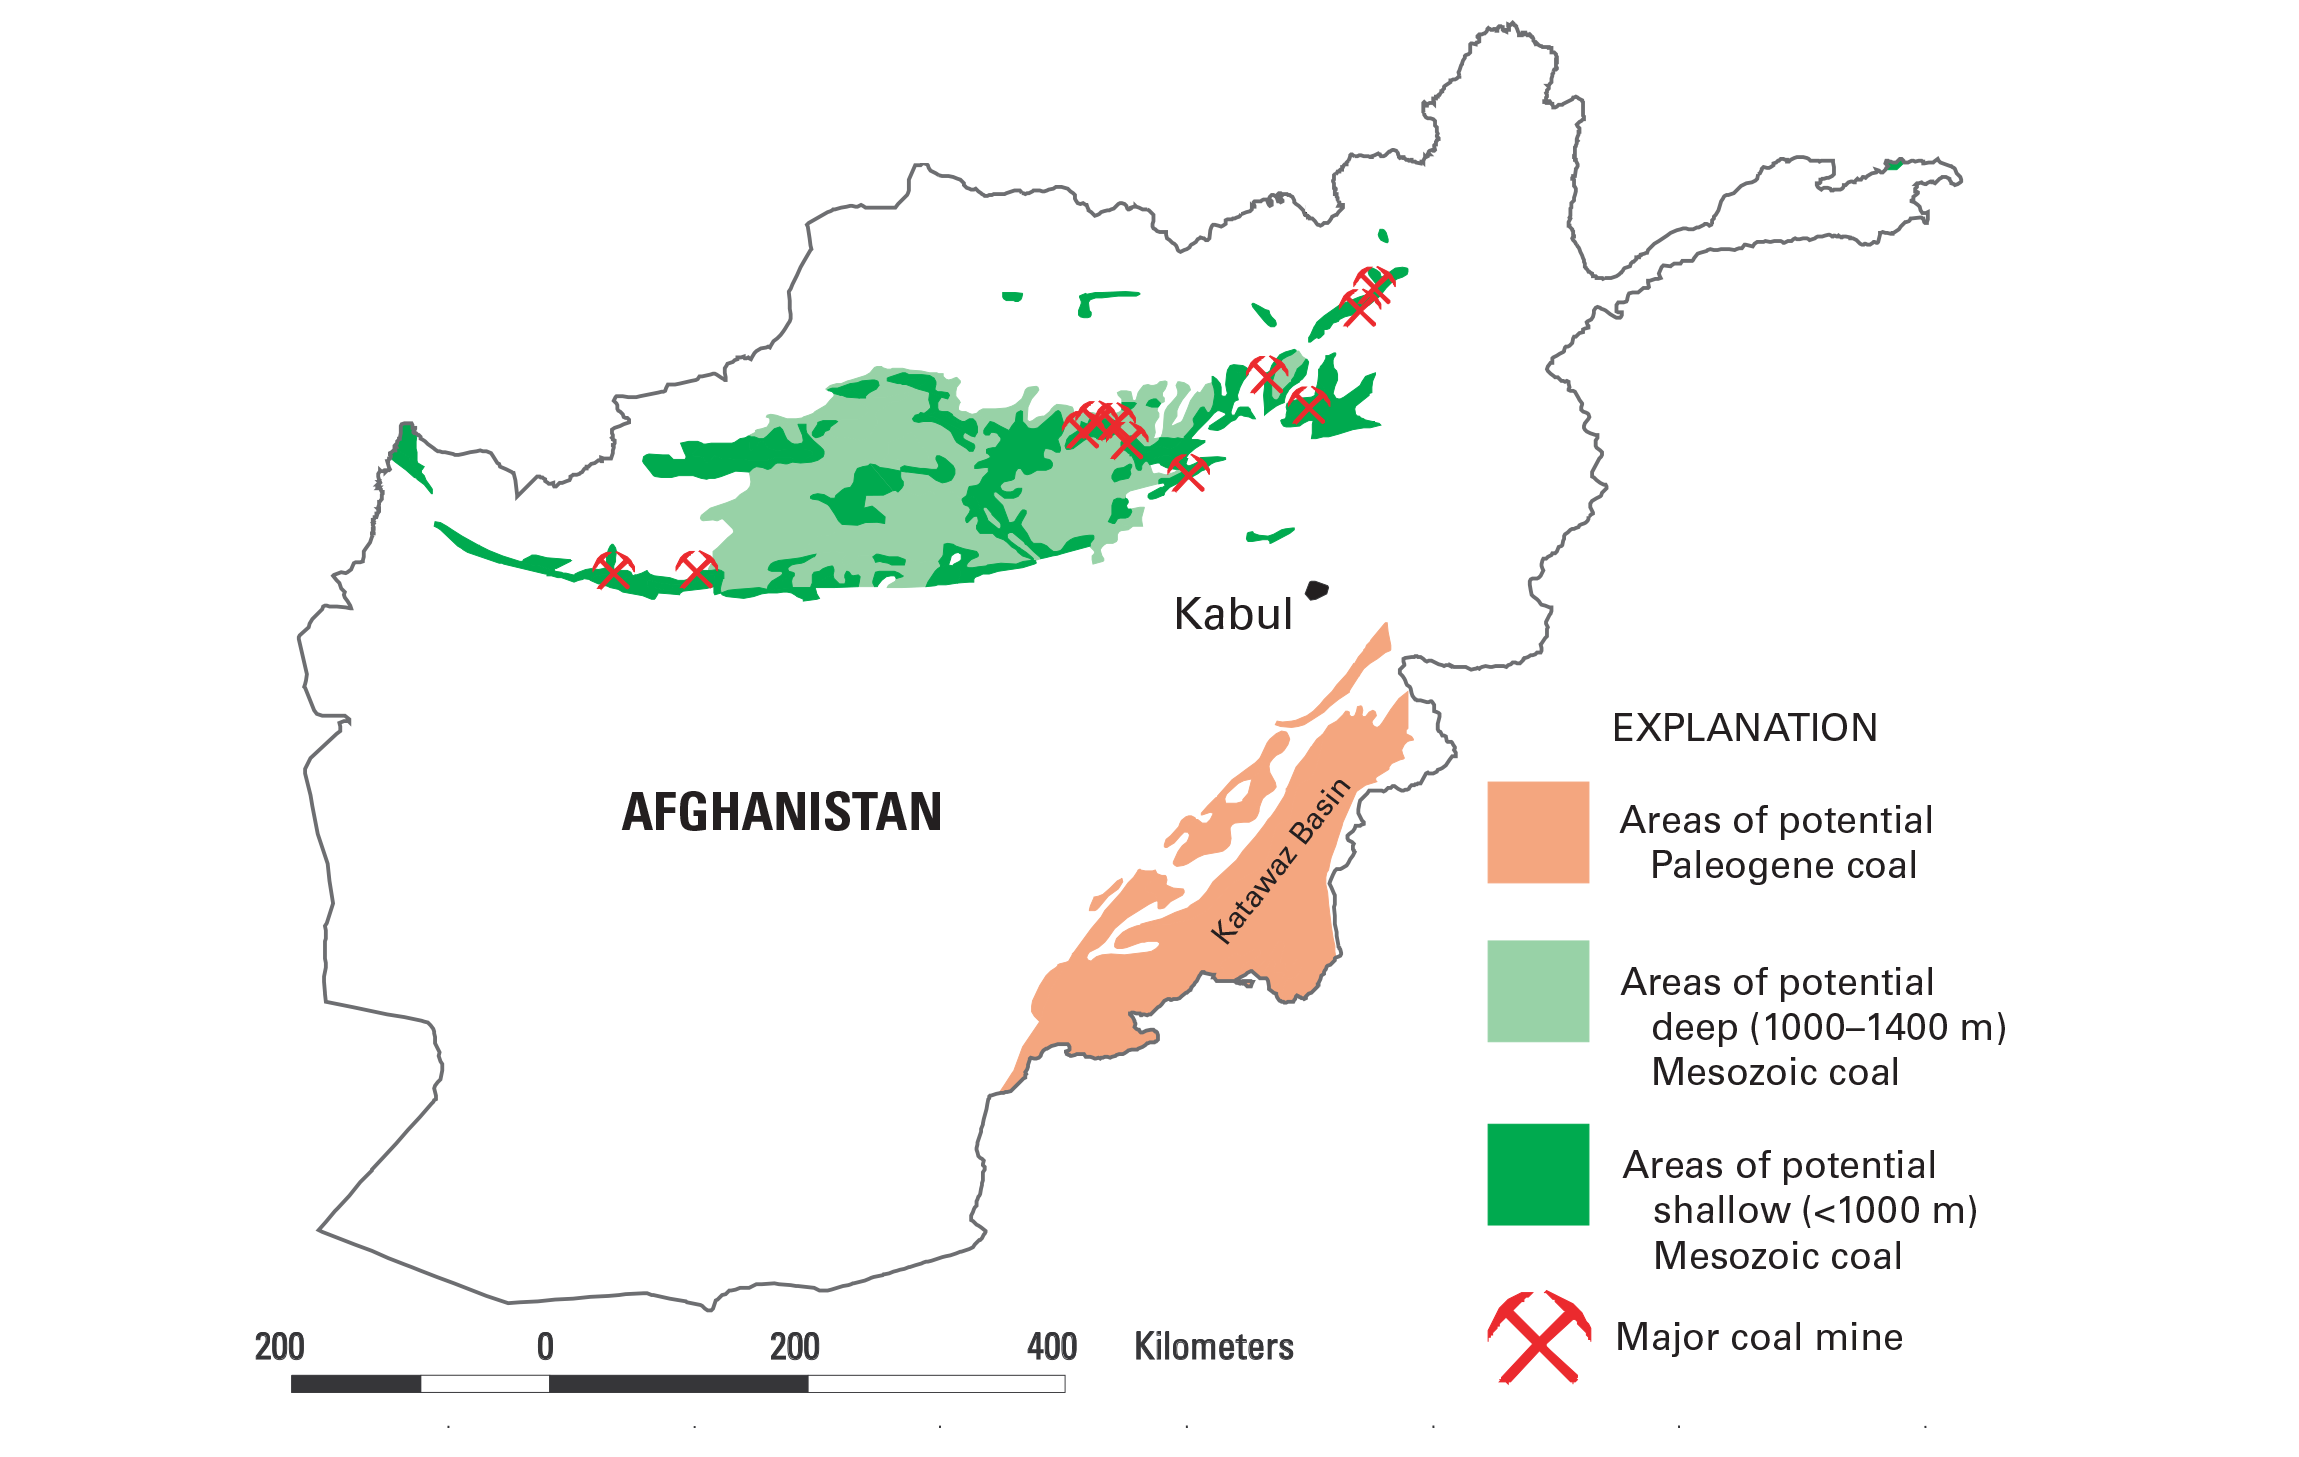 Map: Location of coal deposits and coal mines in Afghanistan